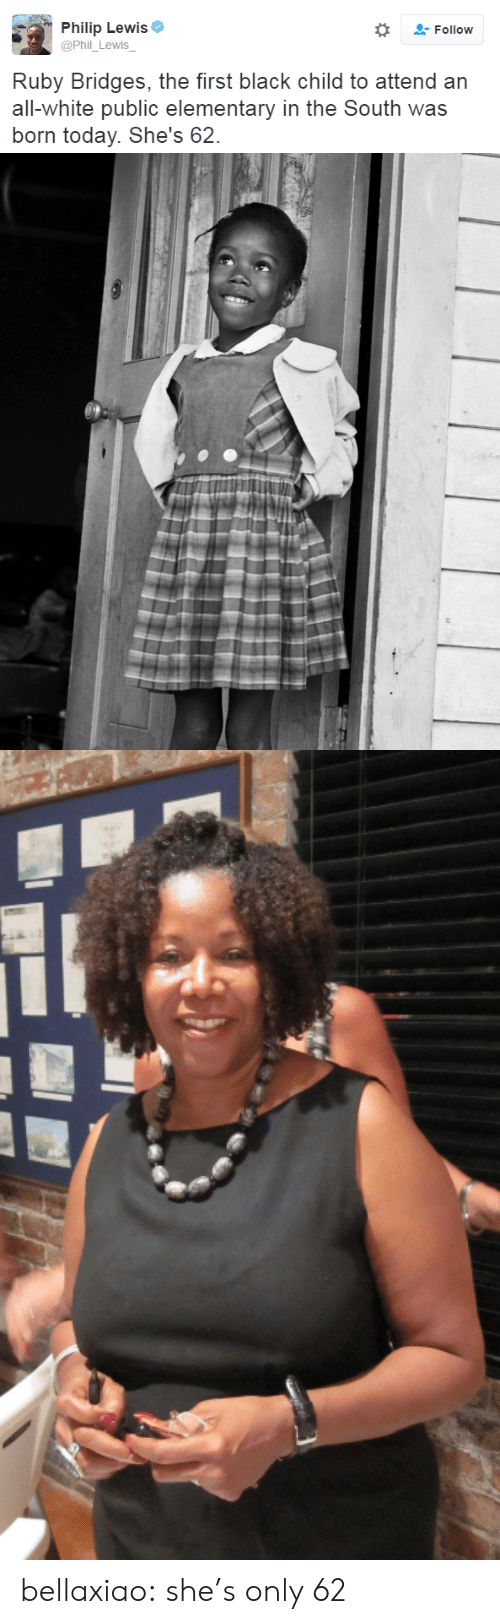 Black Child: Philip Lewis  @Phil_Lewis  Follow  Ruby Bridges, the first black child to attend an  all-white public elementary in the South was  born today. She's 62. bellaxiao:  she's only 62